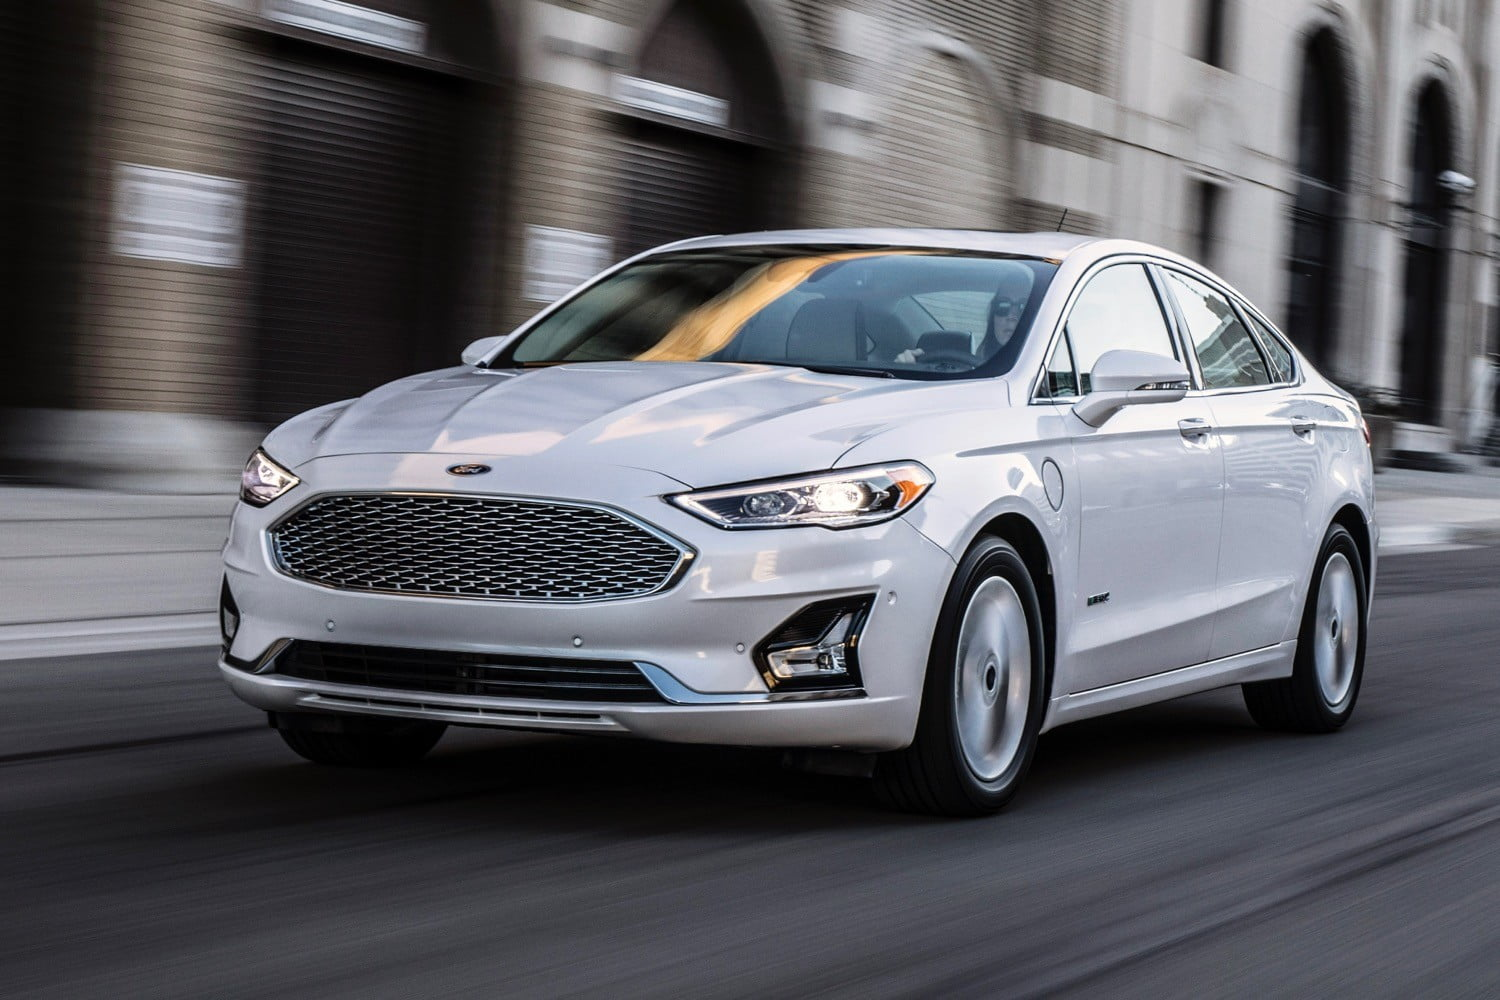 Car Manufacturers Reliability List The Most Reliable Cars Of 2019 Digital Trends